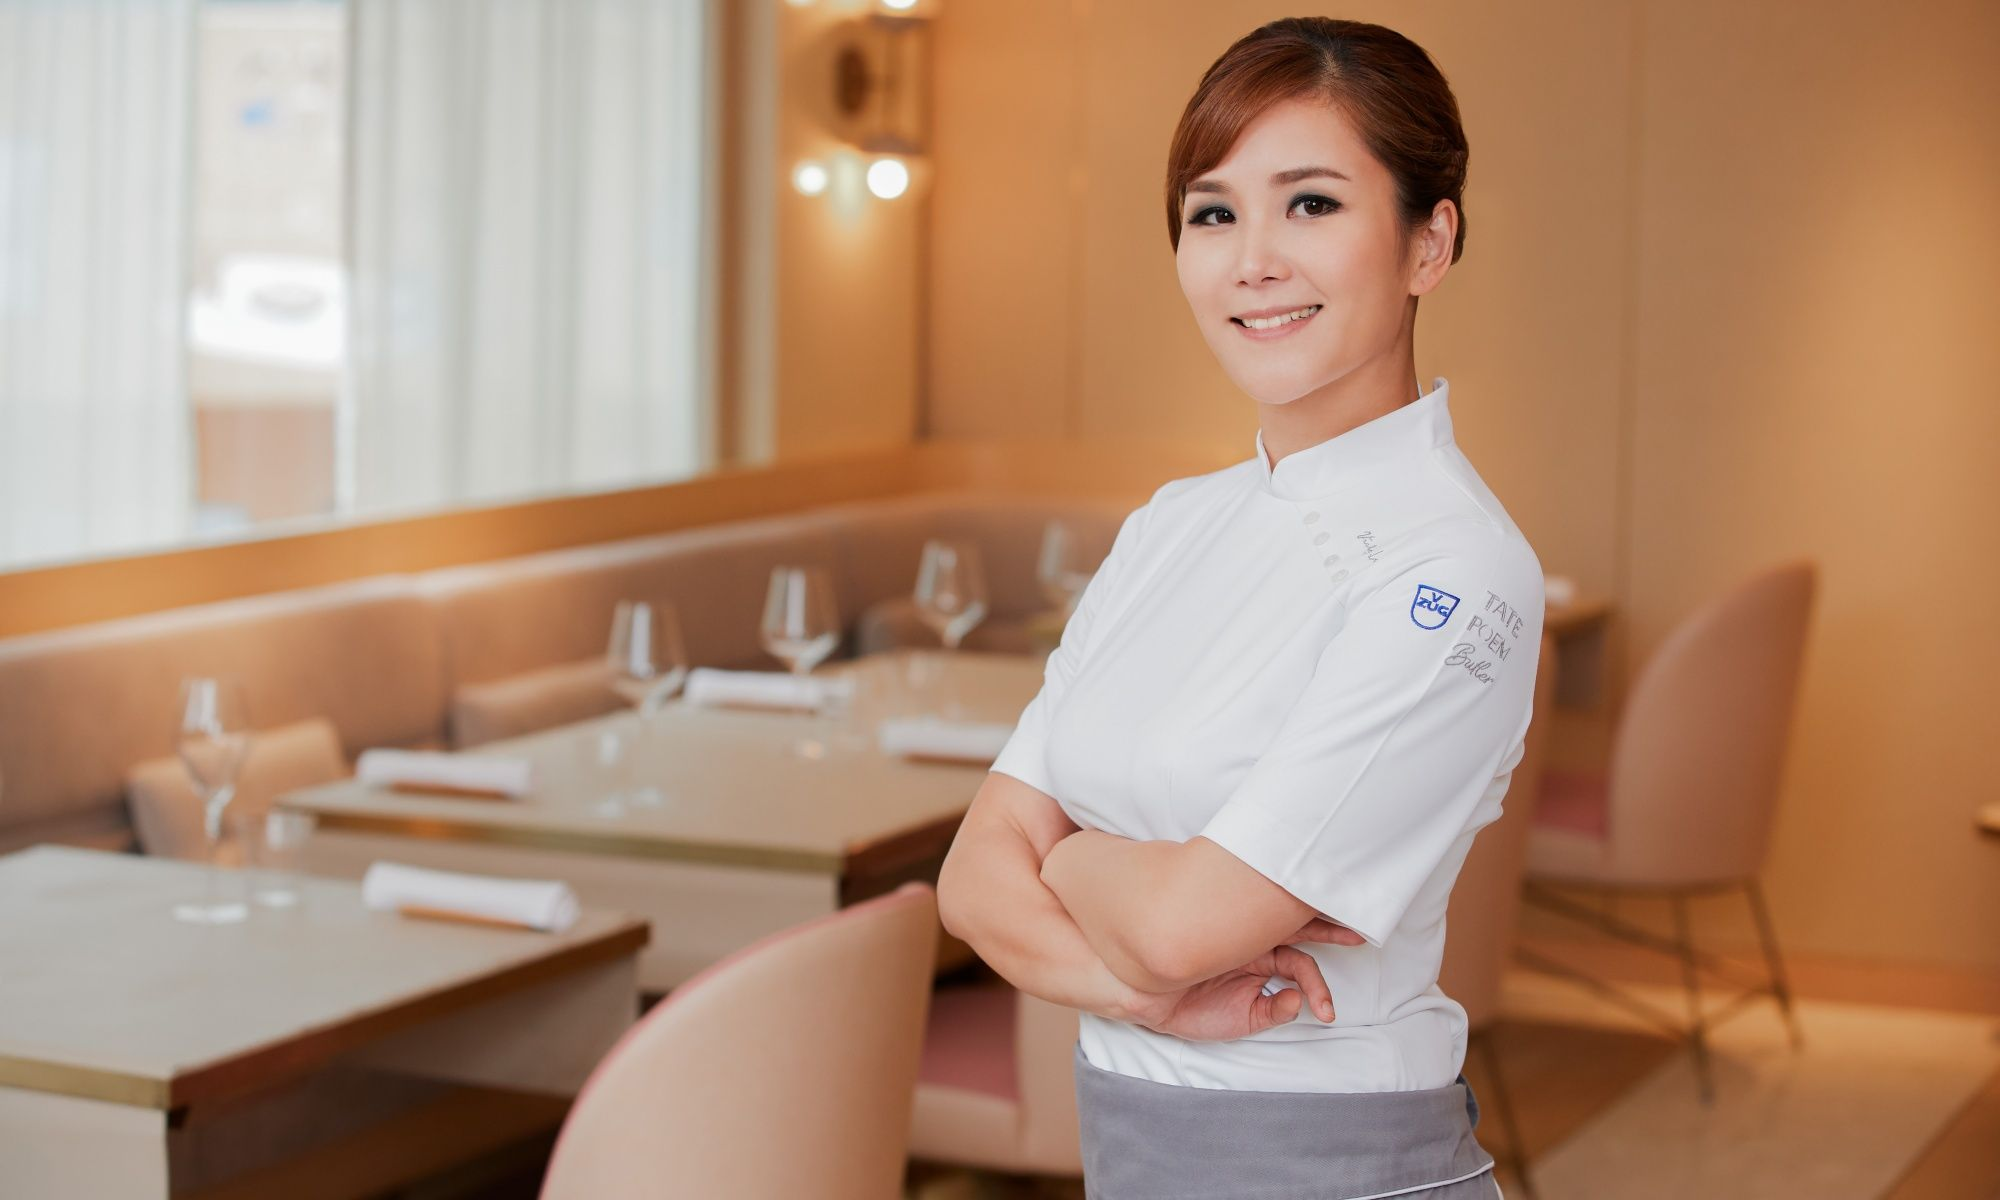 Tate Dining Room And Tosca Di Angelo To launch All-Female Guest Chef Programmes